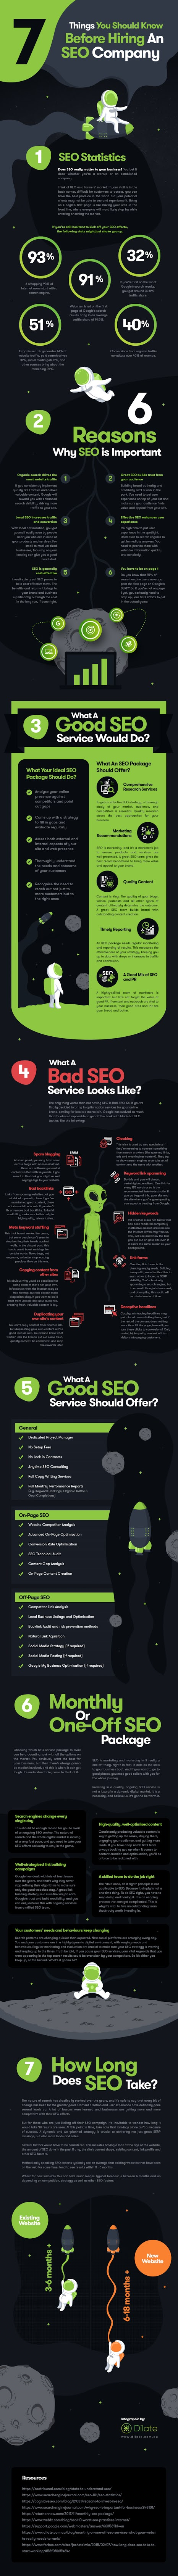 7 Things You Should Know Before Hiring an SEO Company #infographic